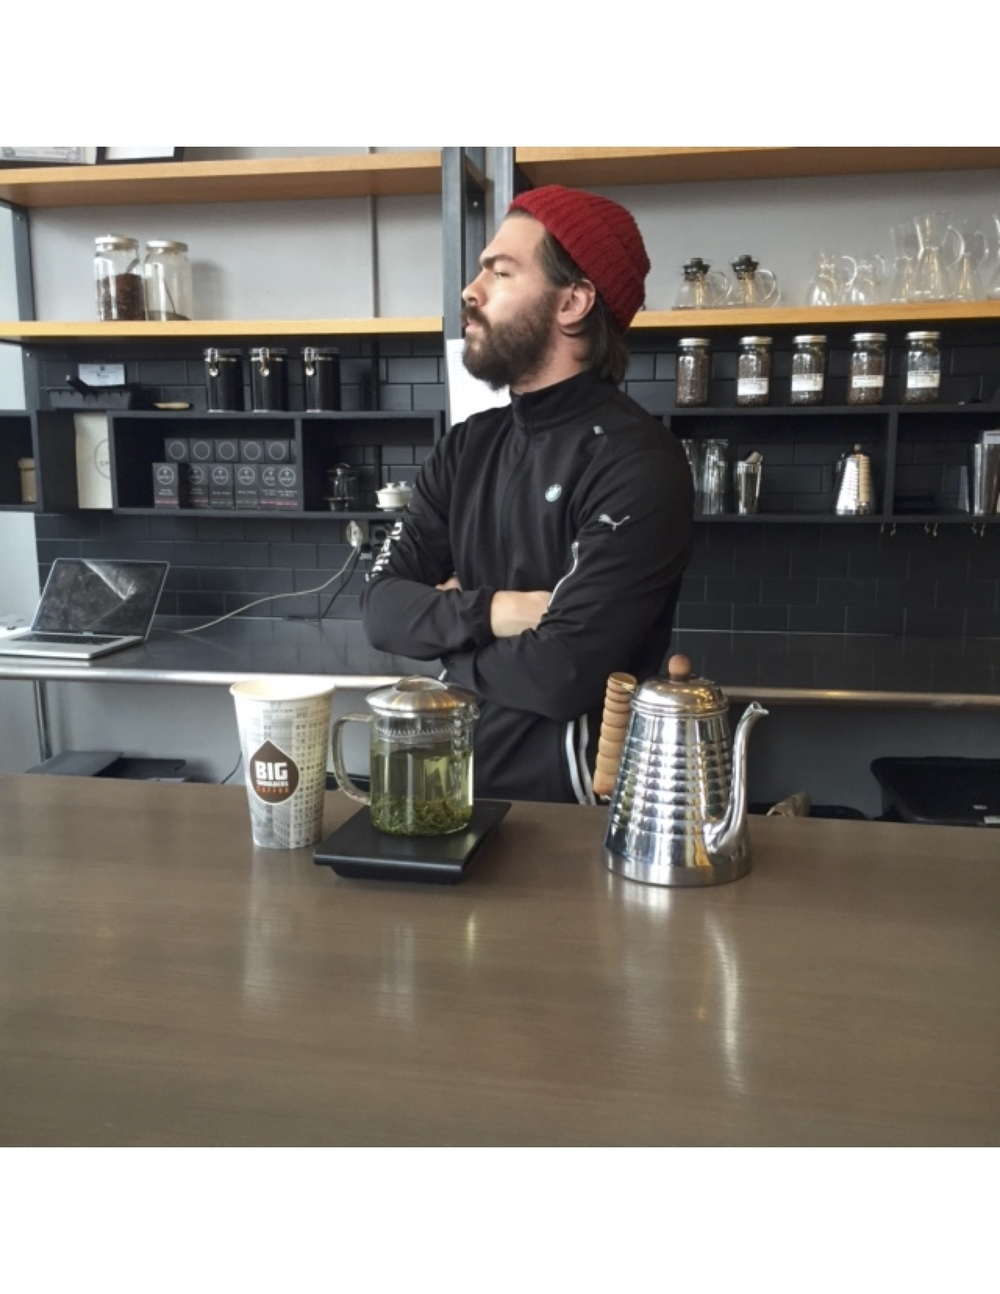 This cafe does brew to order and the tea is made behind the counter and served to go